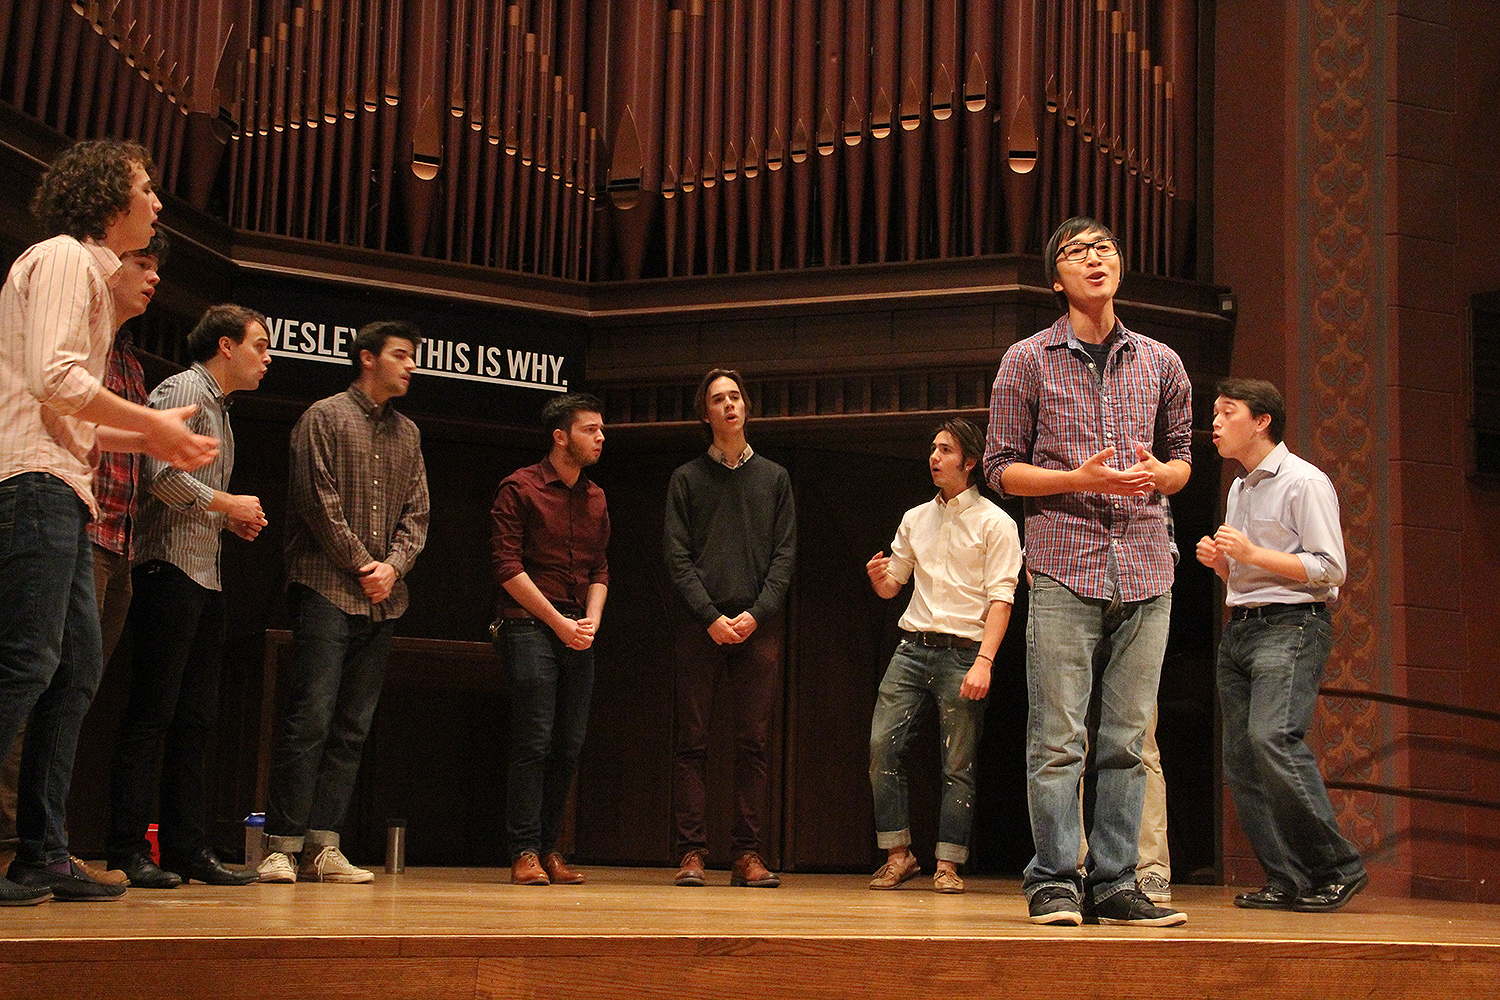 The 5th Annual Stone A Cappella Concert at Memorial Chapel on Nov. 8 featured the vocal talent of Wesleyan's many student a capella groups. (Photo by Rebecca Goldfarb Terry '19)